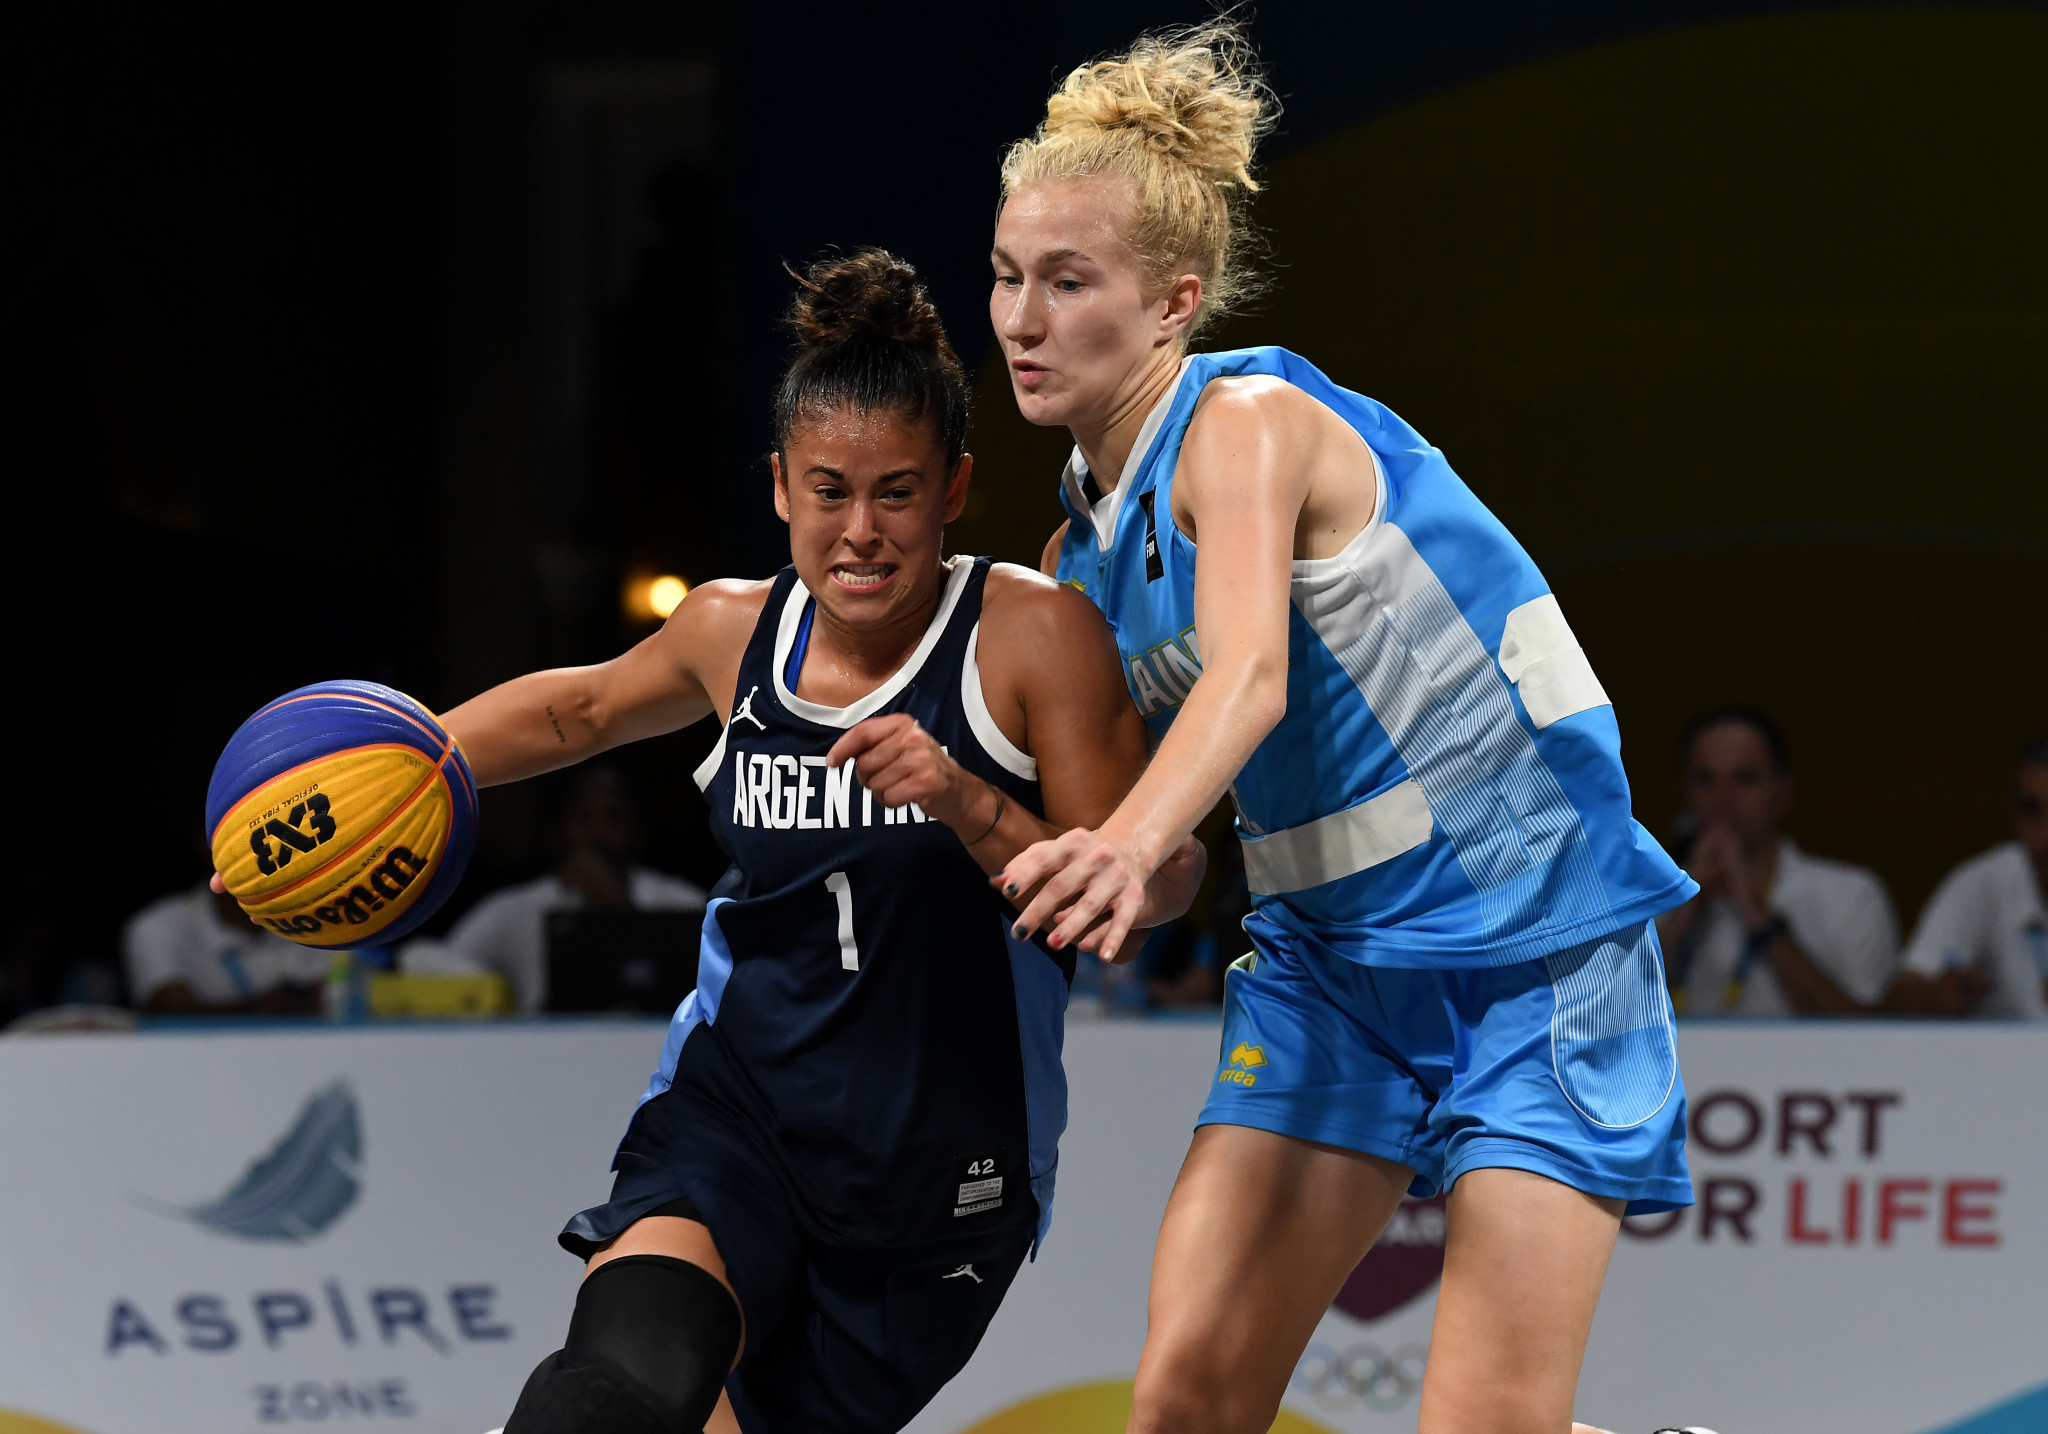 Women's 3x3 basketball is rapidly growing in popularity, the survey found ©Getty Images